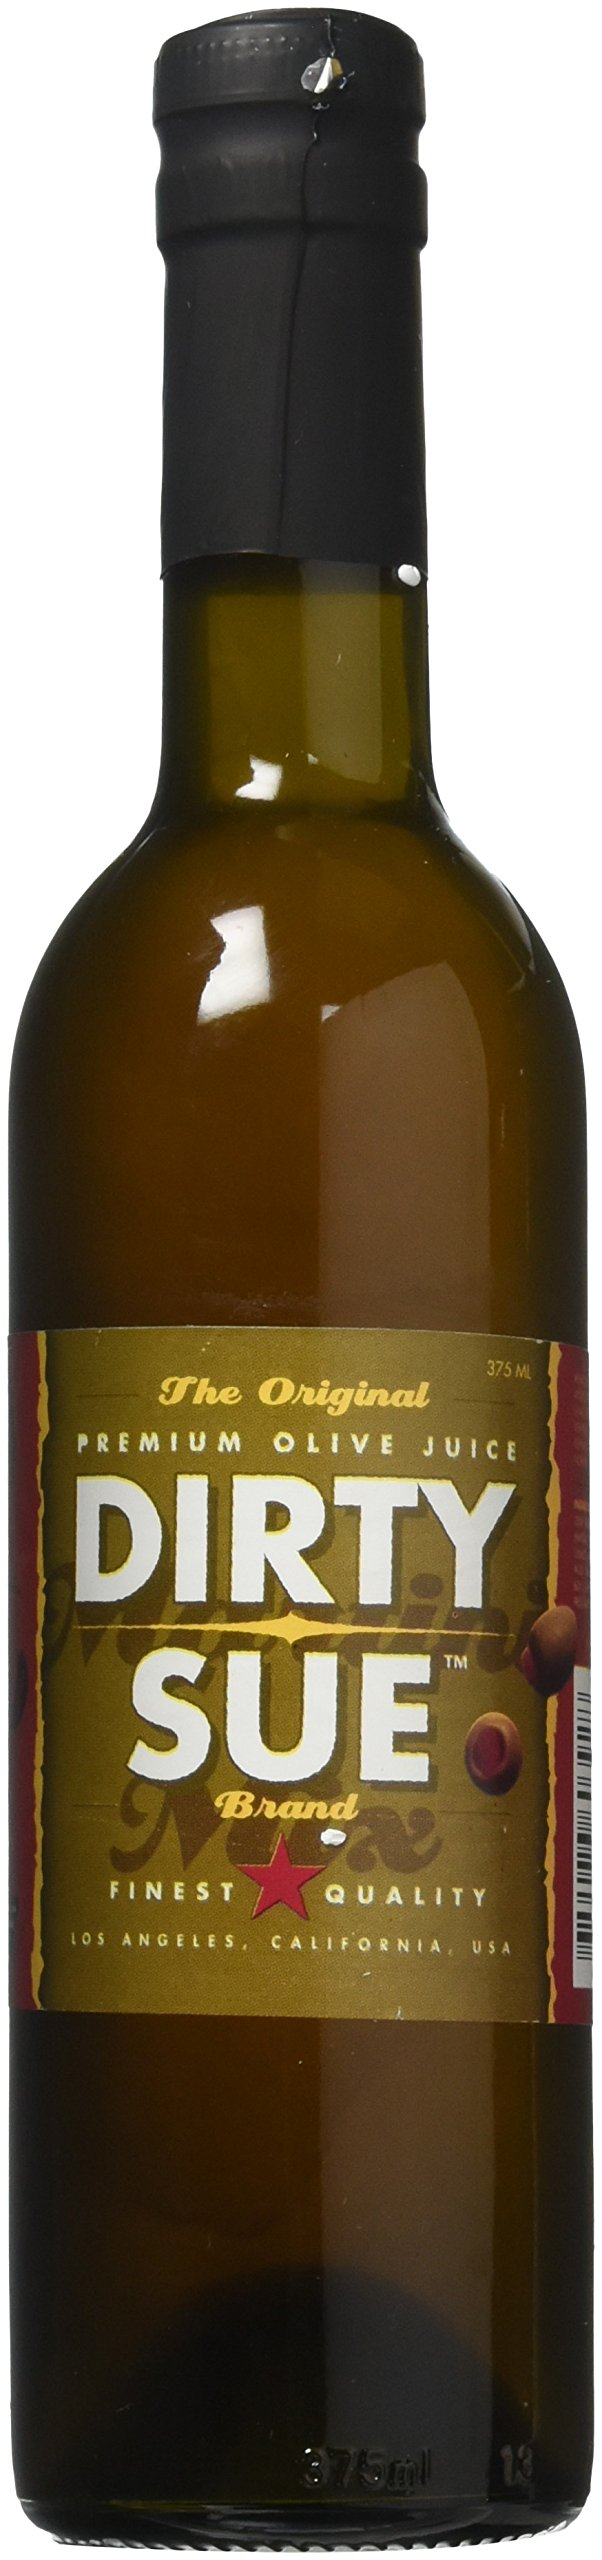 Dirty Sue The Original Premium Olive Juice, 12.69-ounce Bottle by Dirty Sue (Image #1)